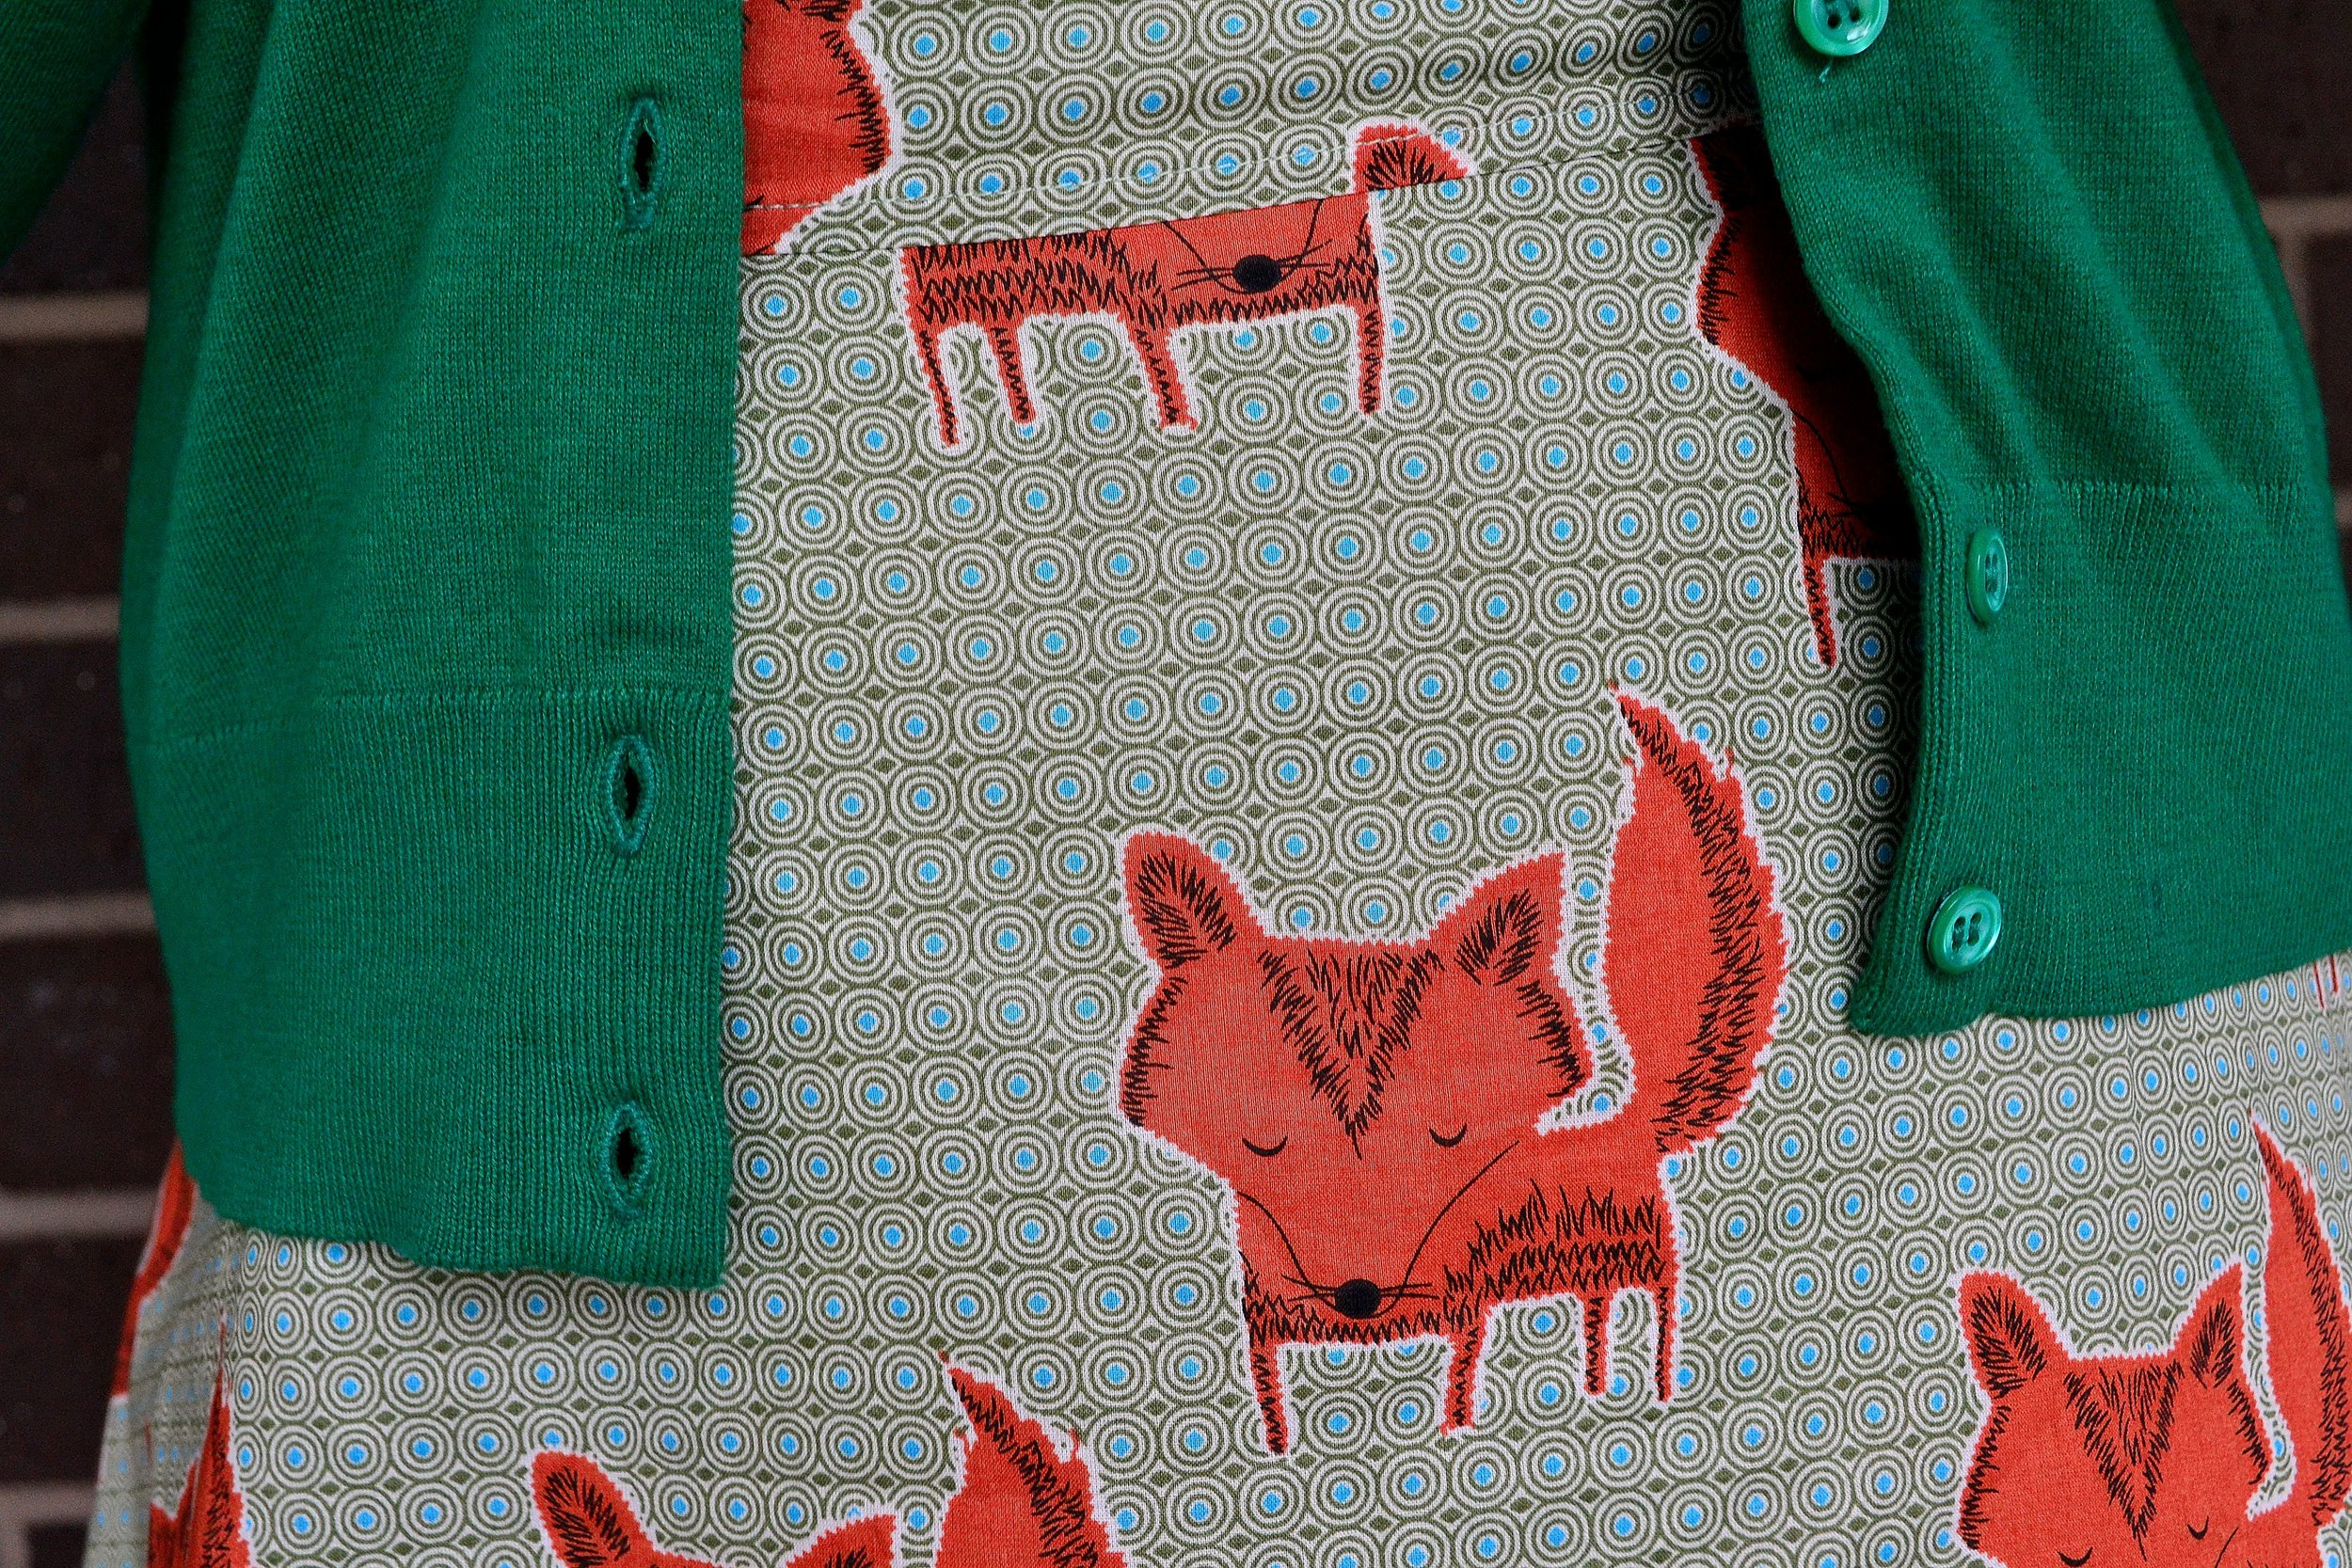 SM Wardrobe fox dress close up.JPG